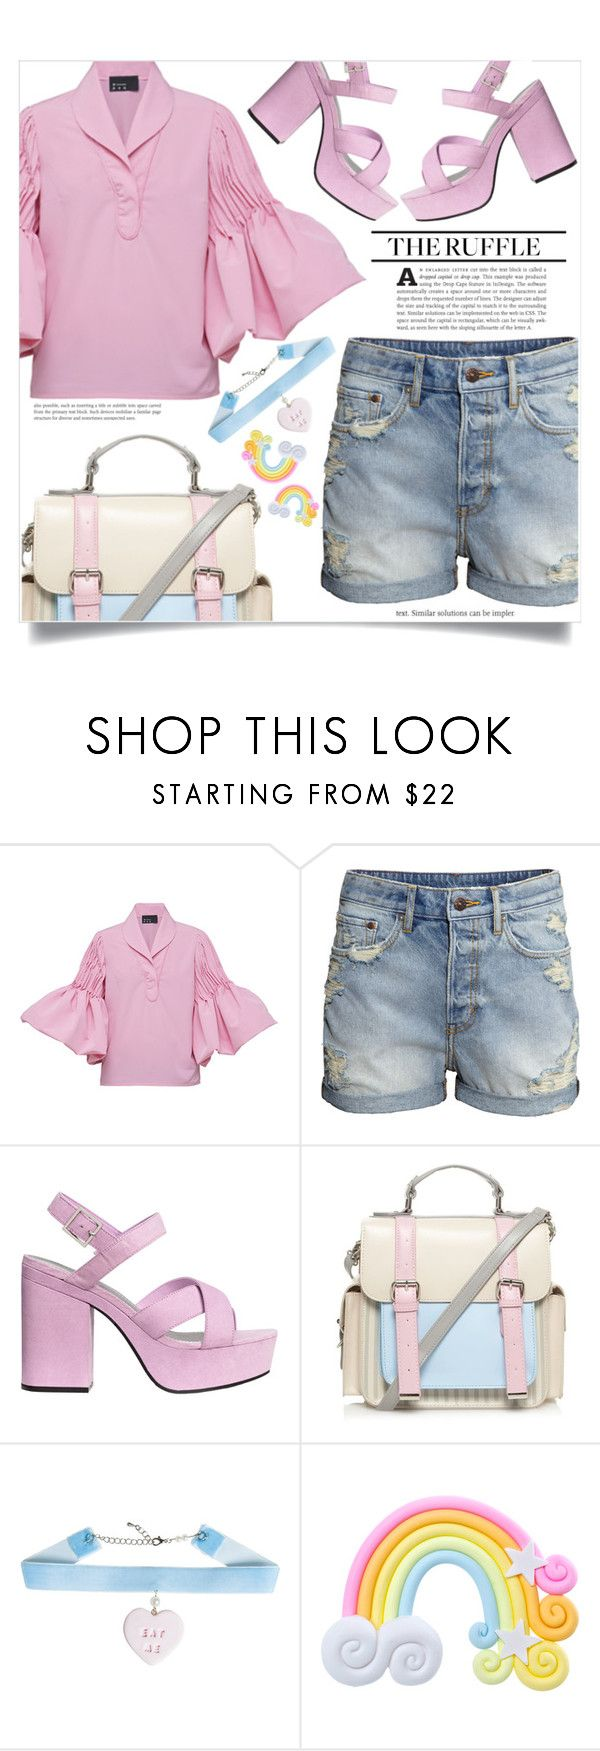 """All Ruffled Up"" by dolly-valkyrie ❤ liked on Polyvore featuring N-DUO, H&M, Barneys New York, H! by Henry Holland, Rad+Refined and ruffles"